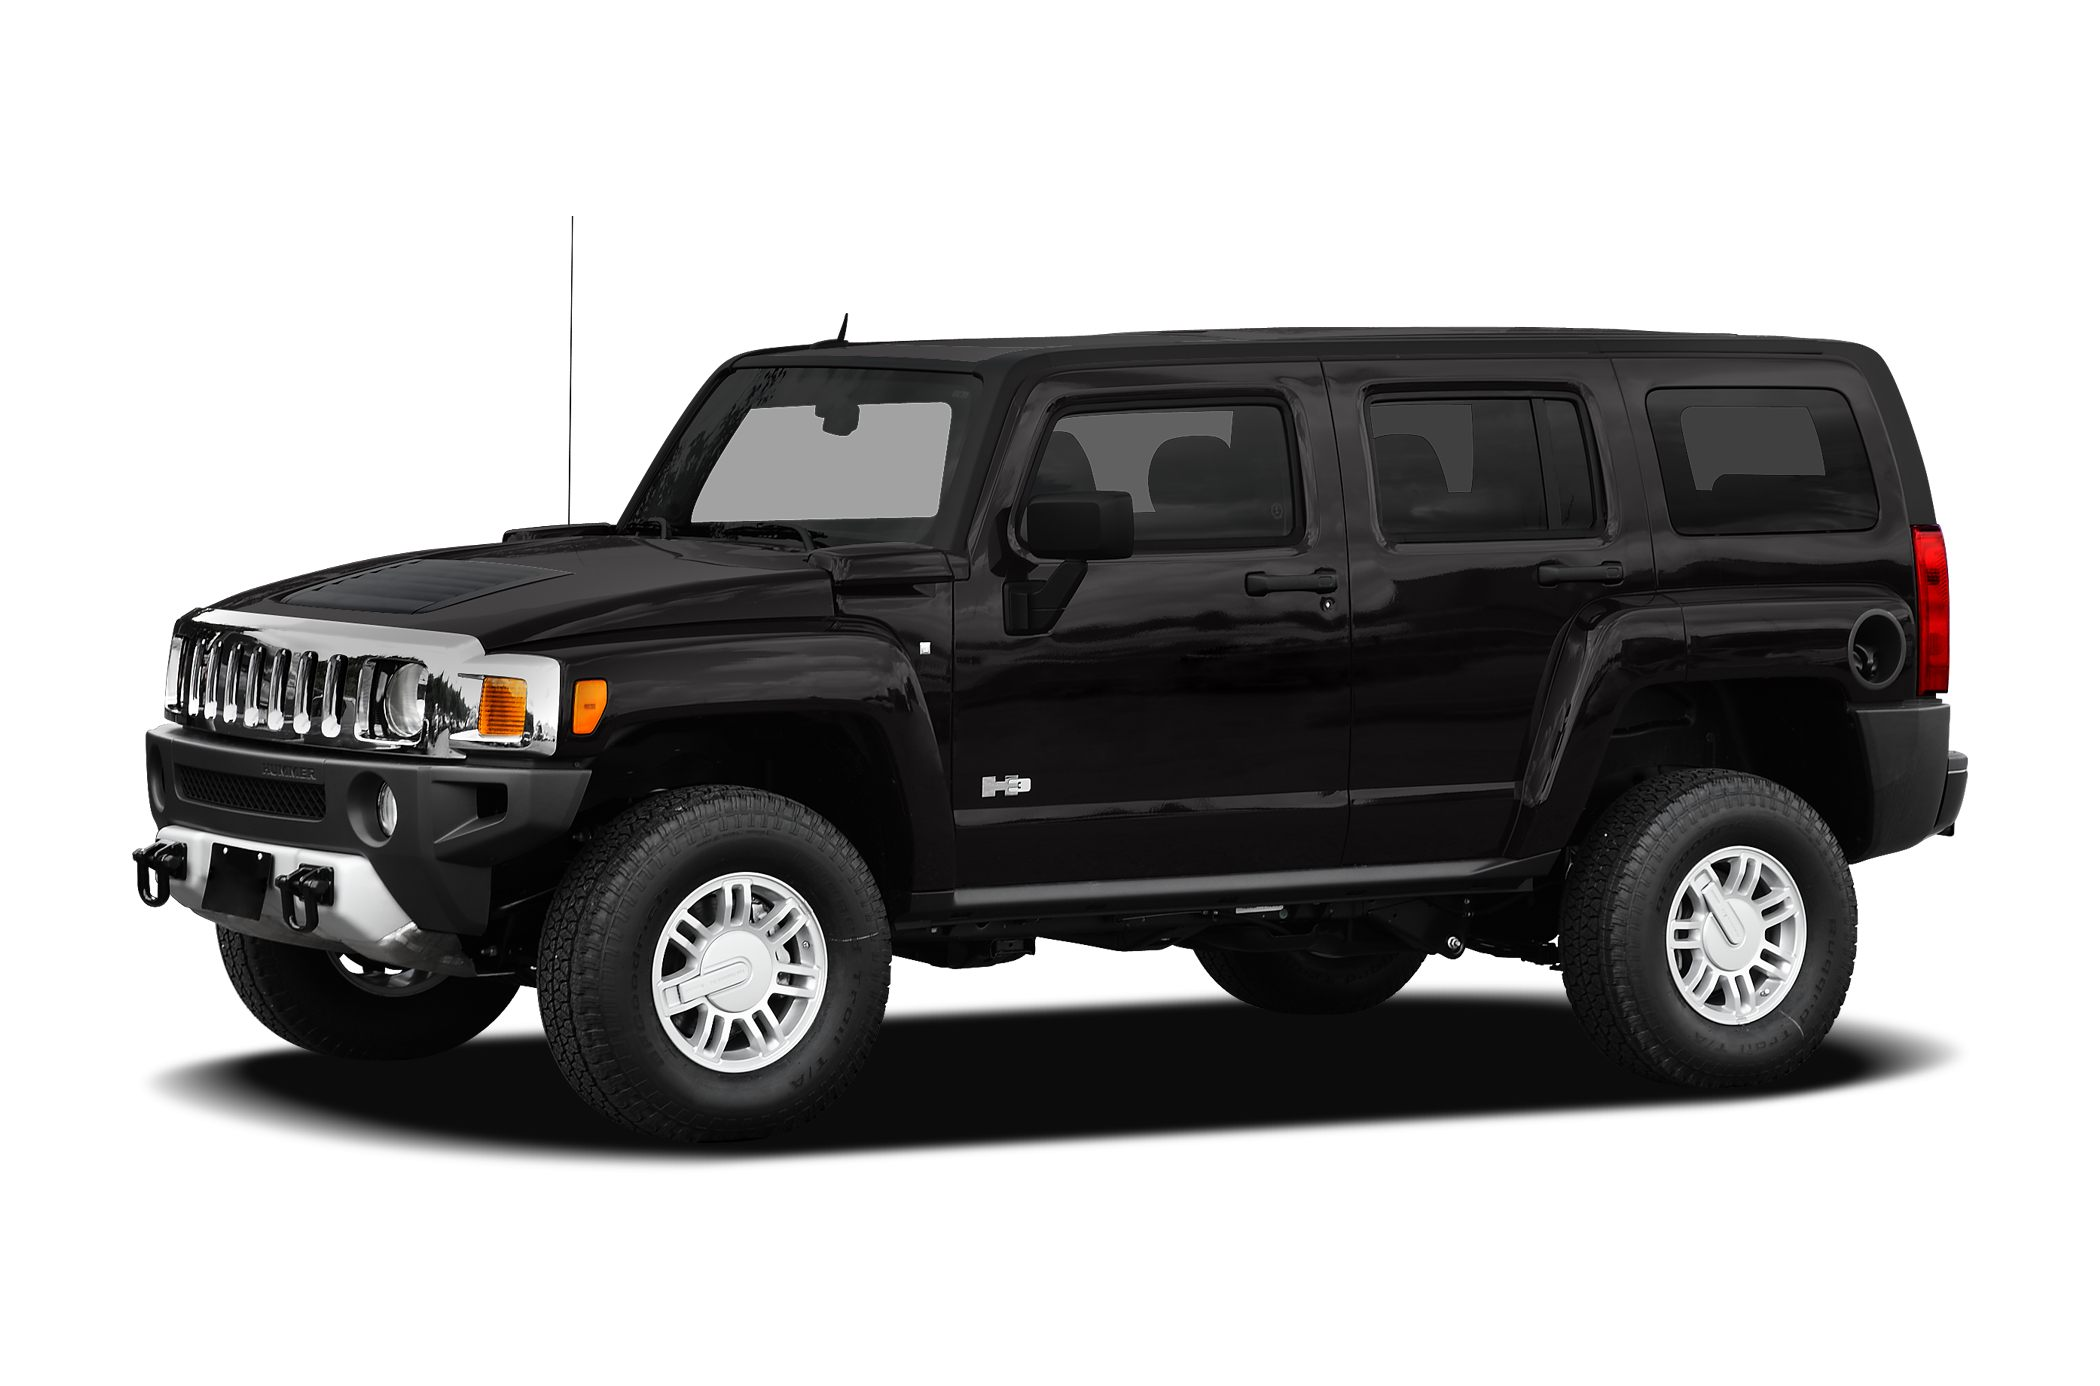 2008 HUMMER H3  4X4 KEYLESS ENTRY SAT RADIO ALLOY WHEELS Miles 123906Color Silver Stoc